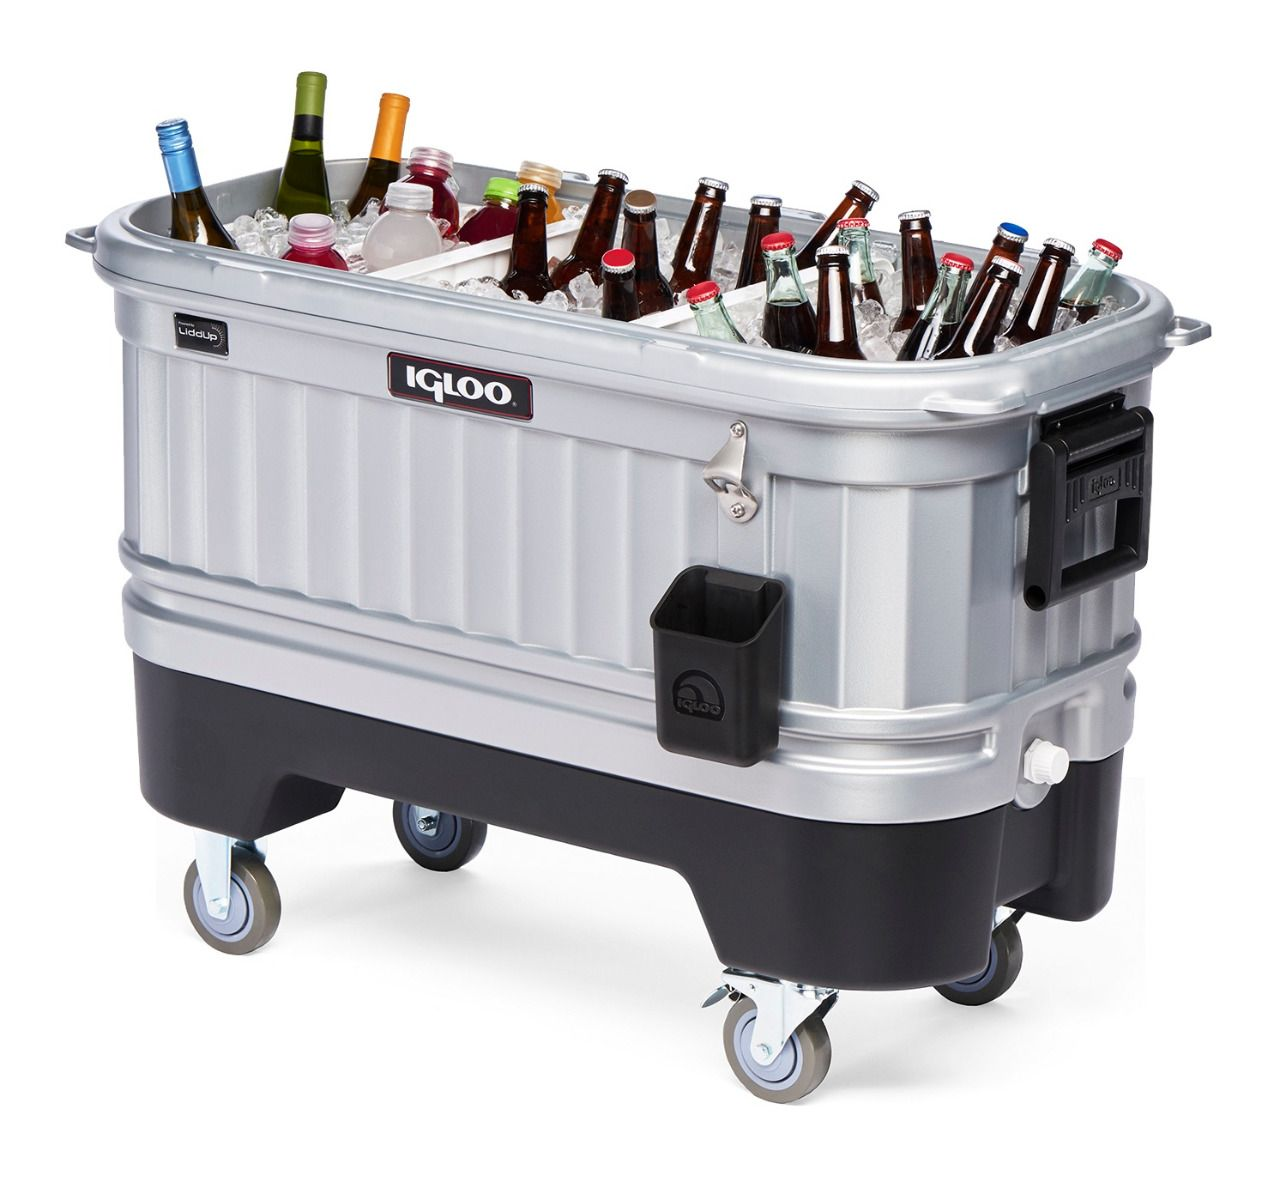 Igloo Party Bar Coolers - Lighted Interior - Separated Compartments